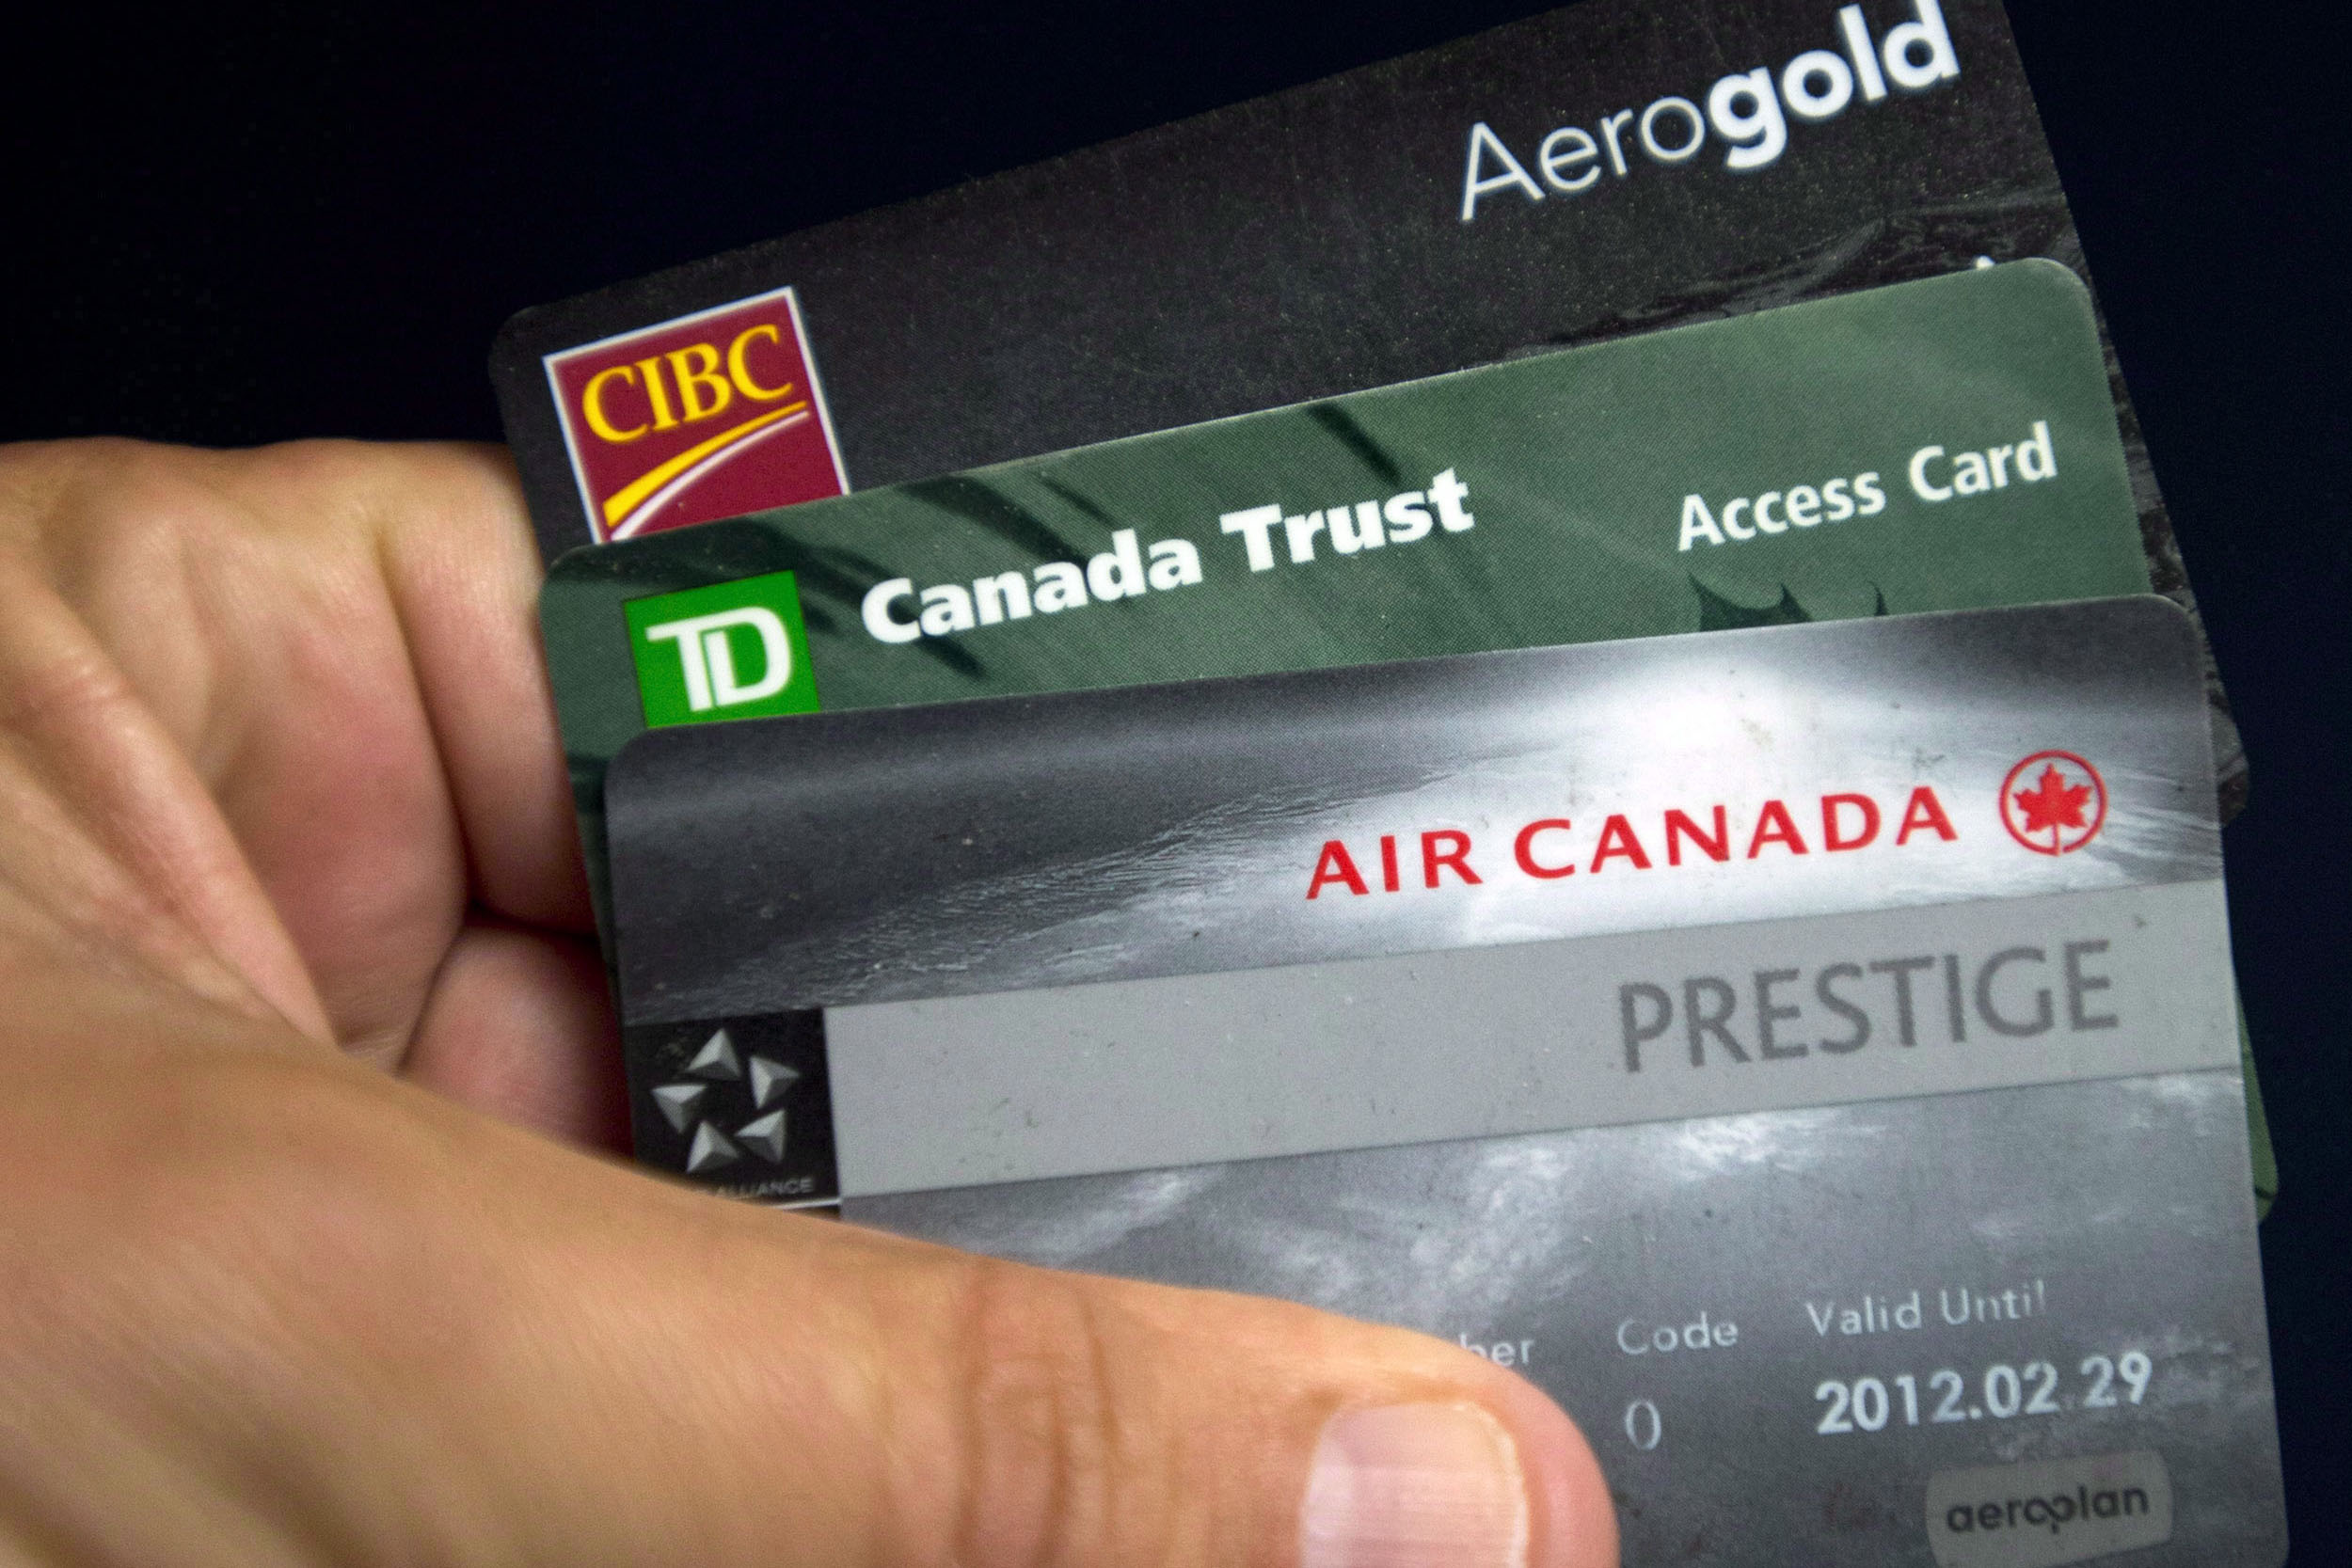 Aimia Rejects Air Canadas Takeover Bid For Aeroplan Program Wiring Money Internationally Td Canada Trust Cards From Cibc Bank And As Shown In Montreal On June 27 2013 Group Has Been Chosen The Primary Credit Card Issuer